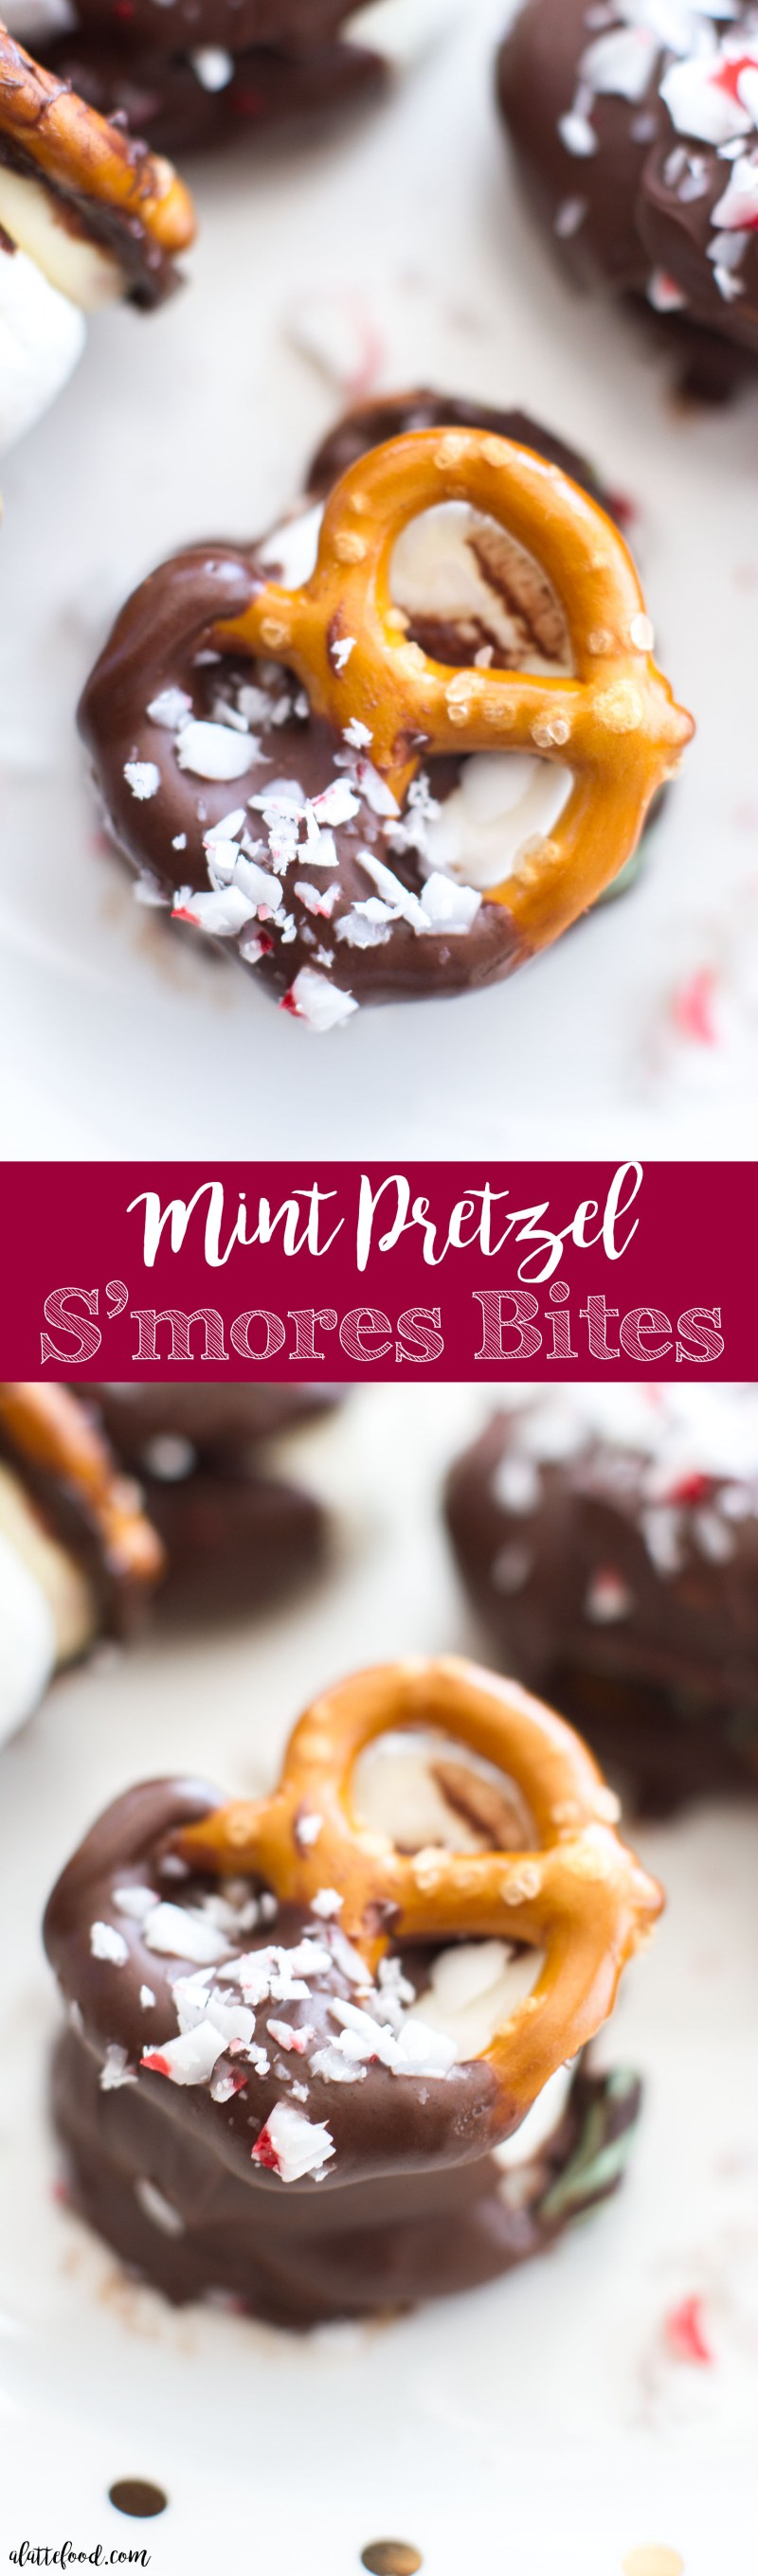 These easy mint pretzel s'mores bites are such a fun Christmas dessert! A gooey marshmallow is sandwiched between two pretzels and a piece of mint chocolate. To make these mint s'mores bites even more decadent, they are dipped in chocolate and sprinkled with crushed peppermints!  Plus, a step-by-step video below!